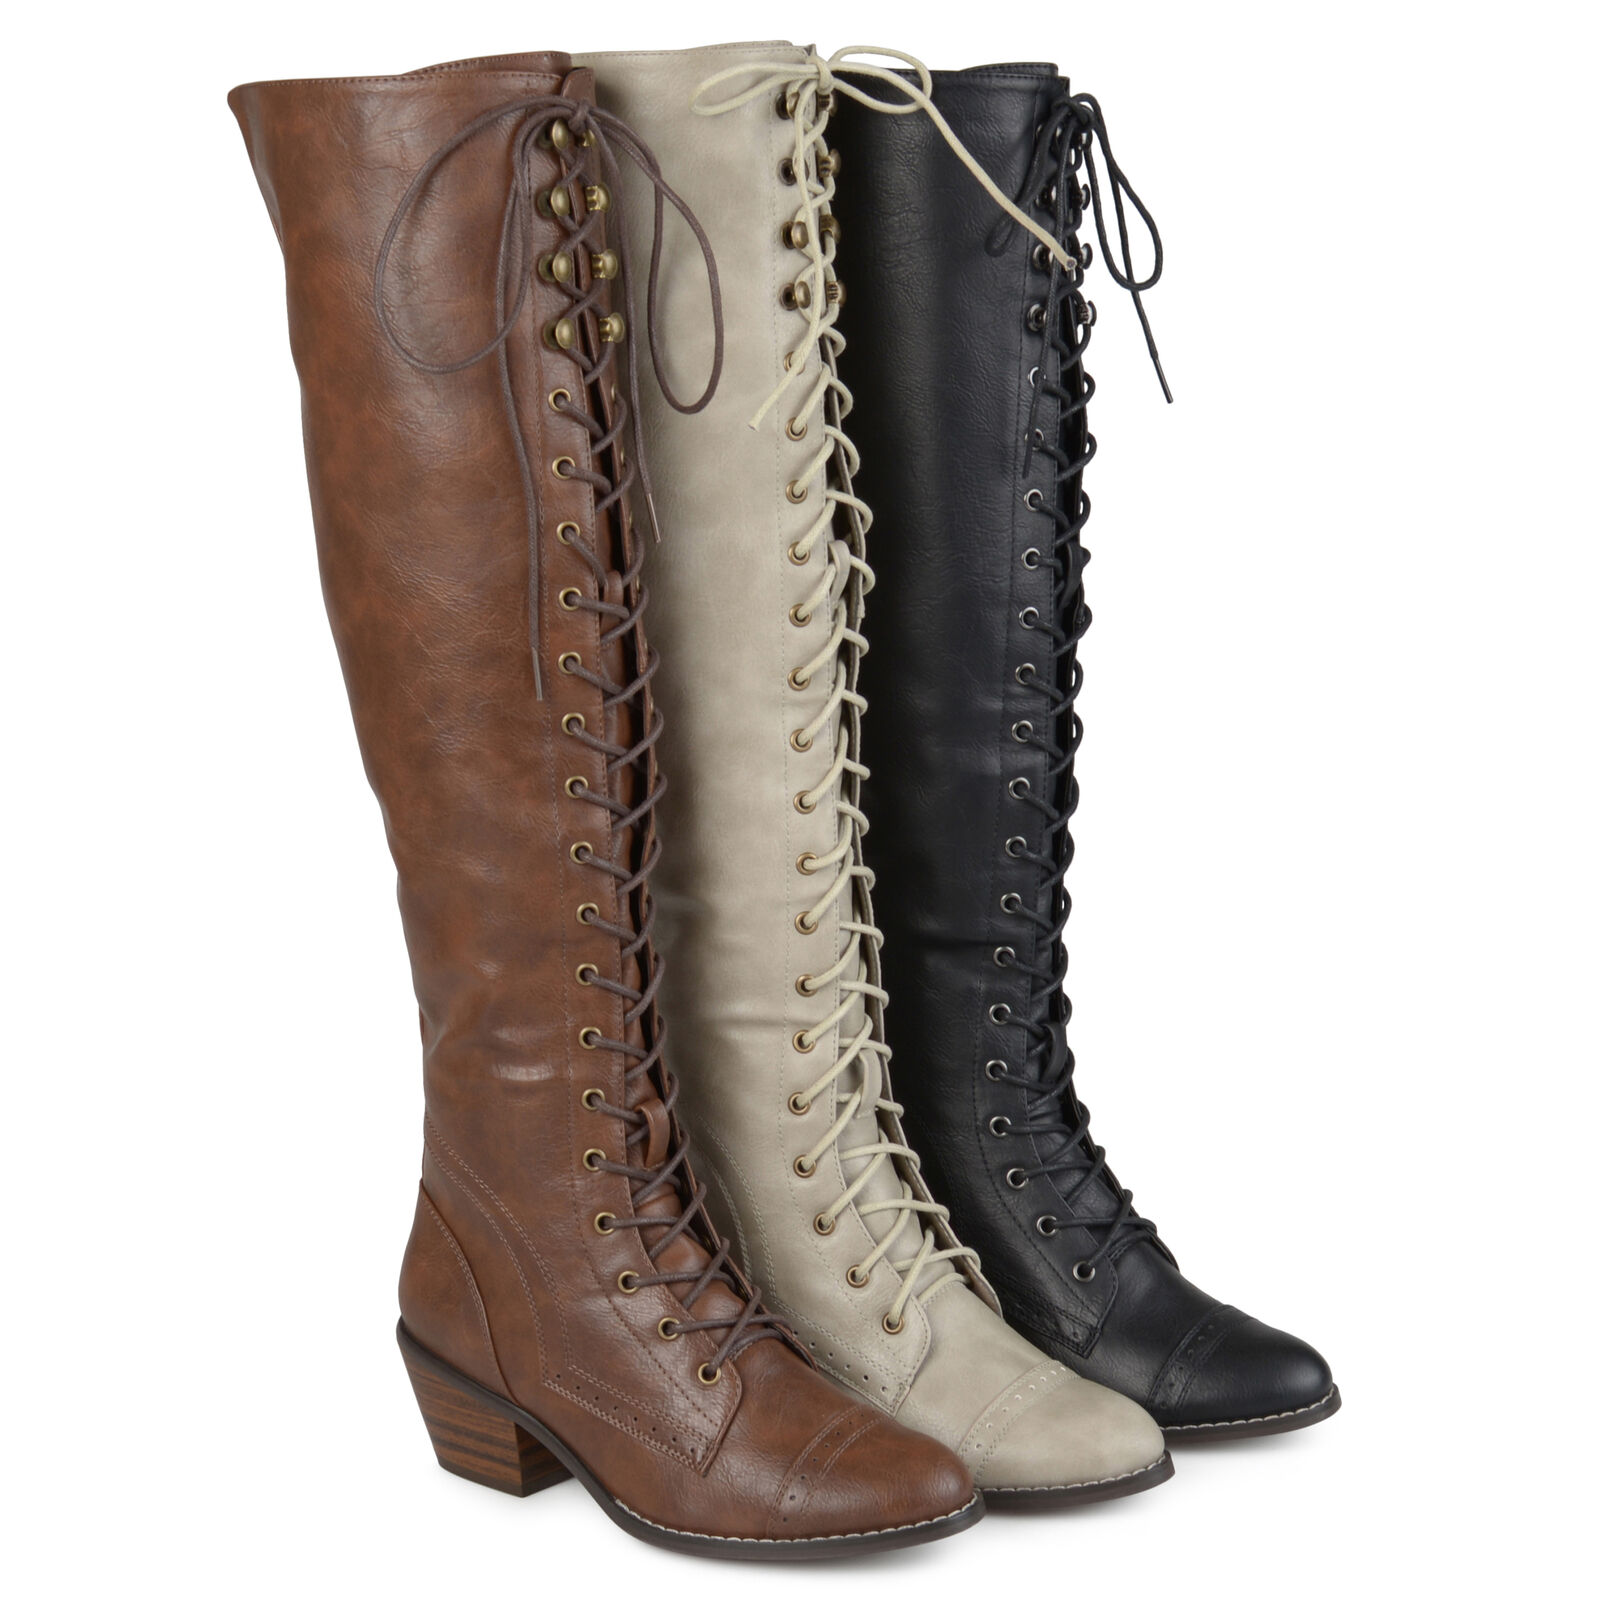 Brinley Co Womens Standard and Wide Calf Over the knee Lace up Brogue Boots New